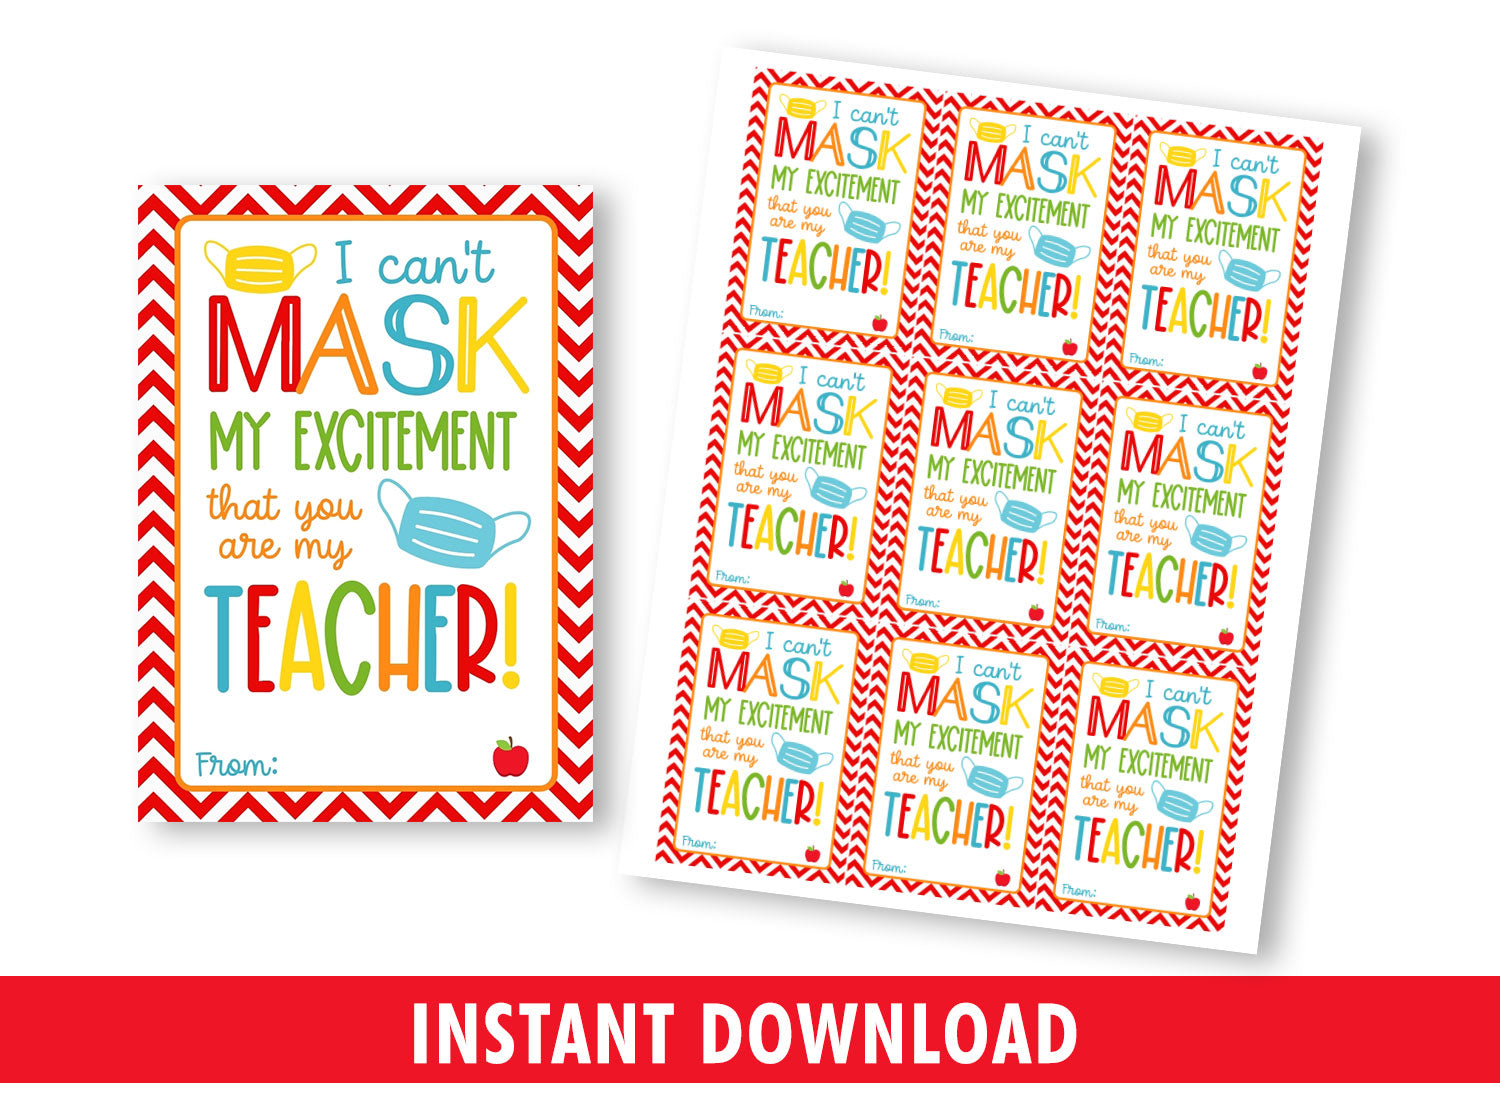 Can't MASK my excitement you're my TEACHER gift tag, Face Mask Favors card. [INSTANT DOWNLOAD] - TitaTipsPrintables